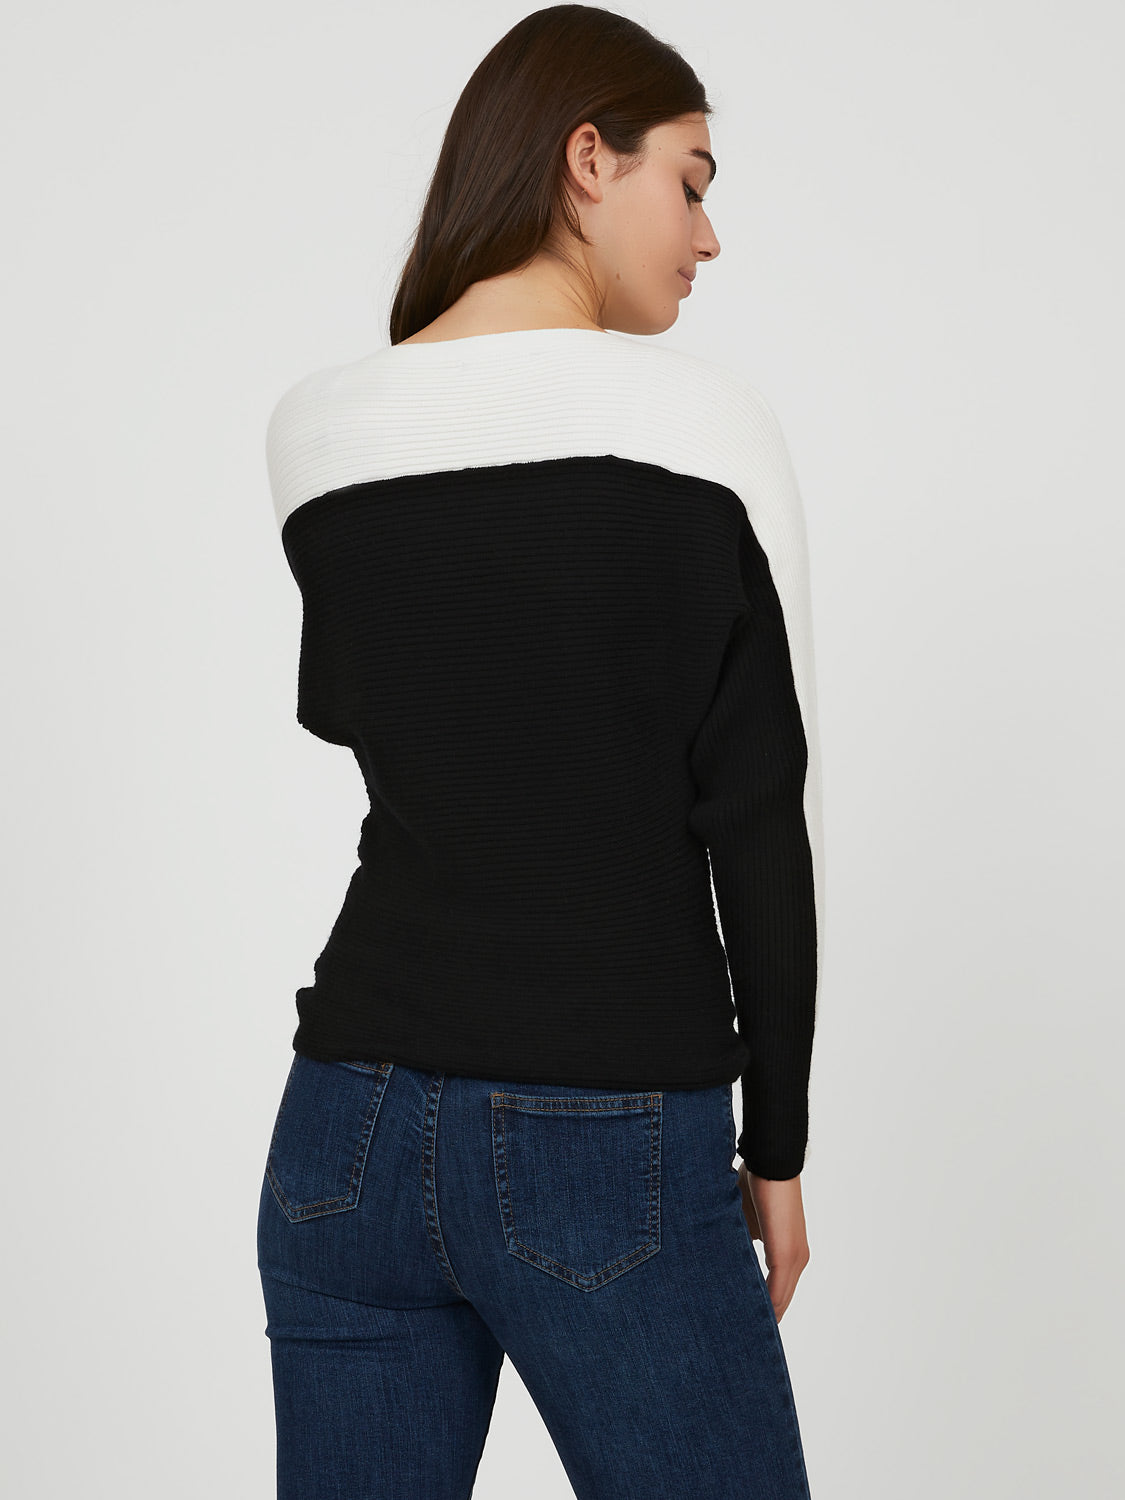 Cozy Chic Colour Block Sweater